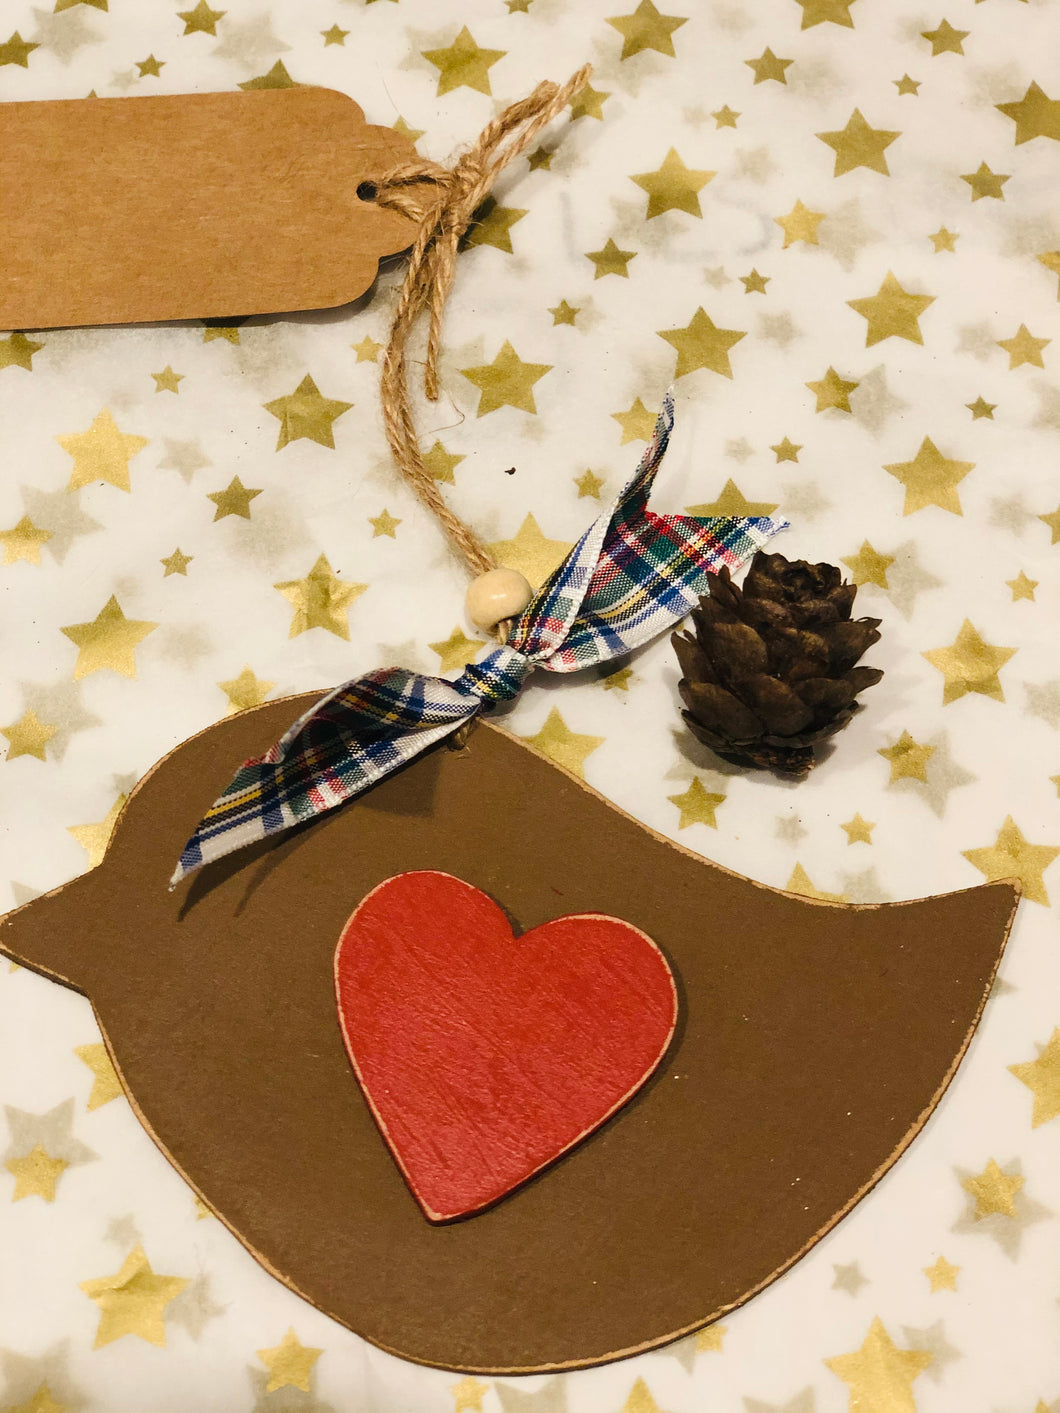 Wooden Christmas decorations £4-£5